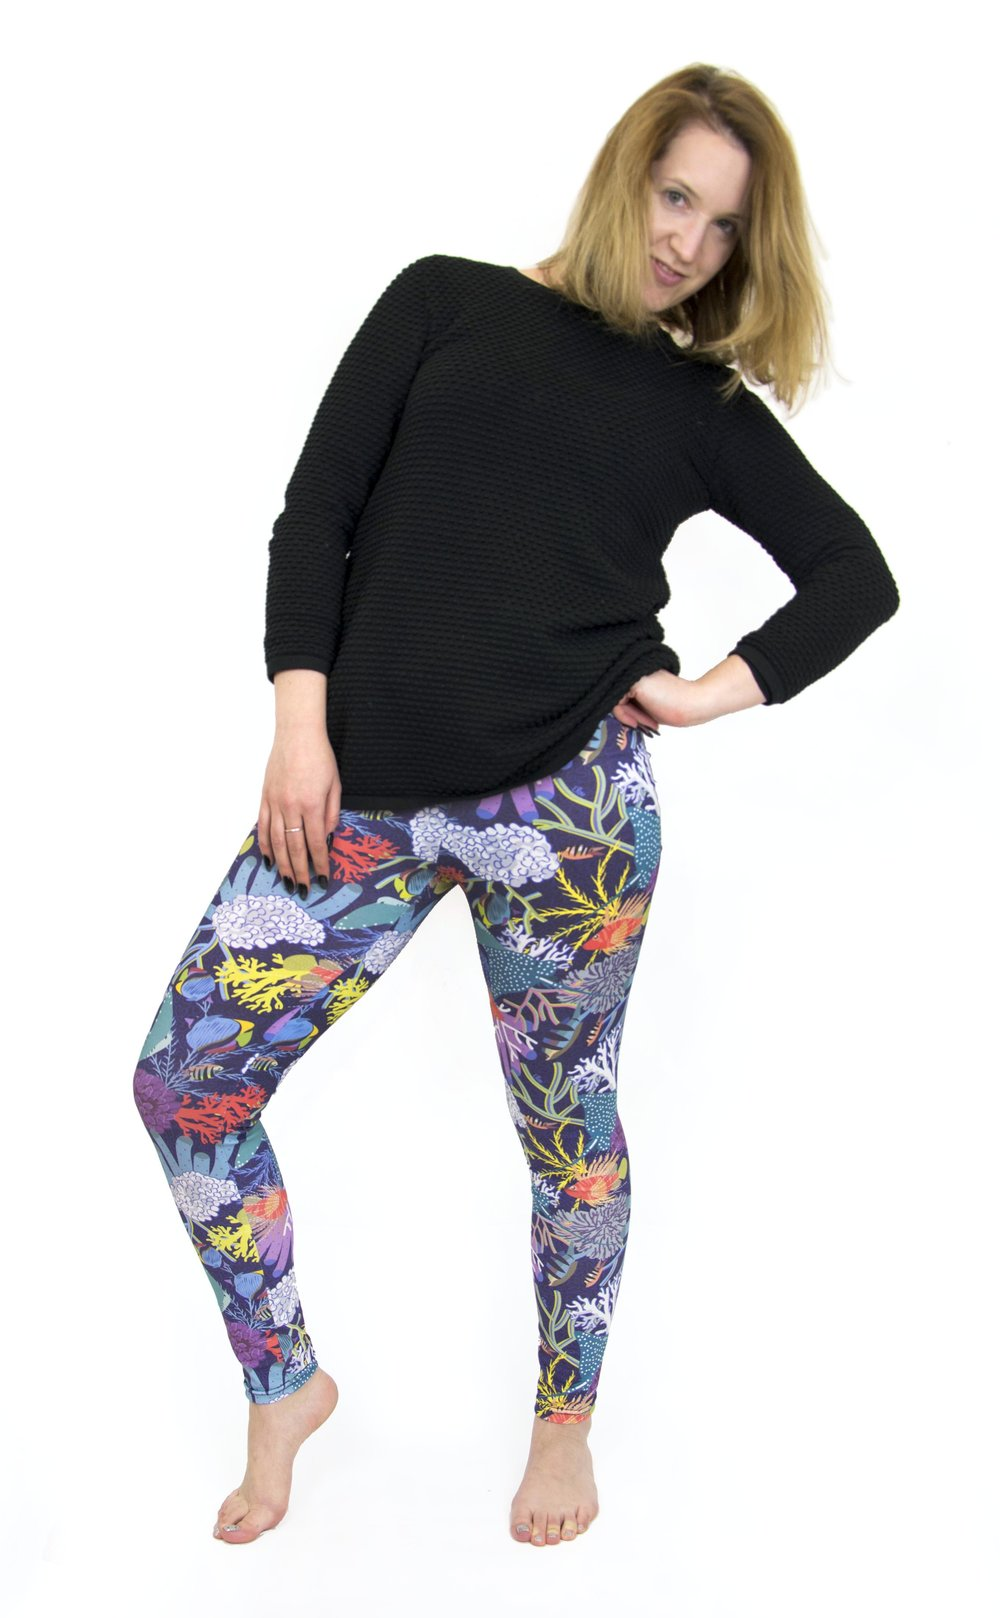 Reef_Leggings1.jpg